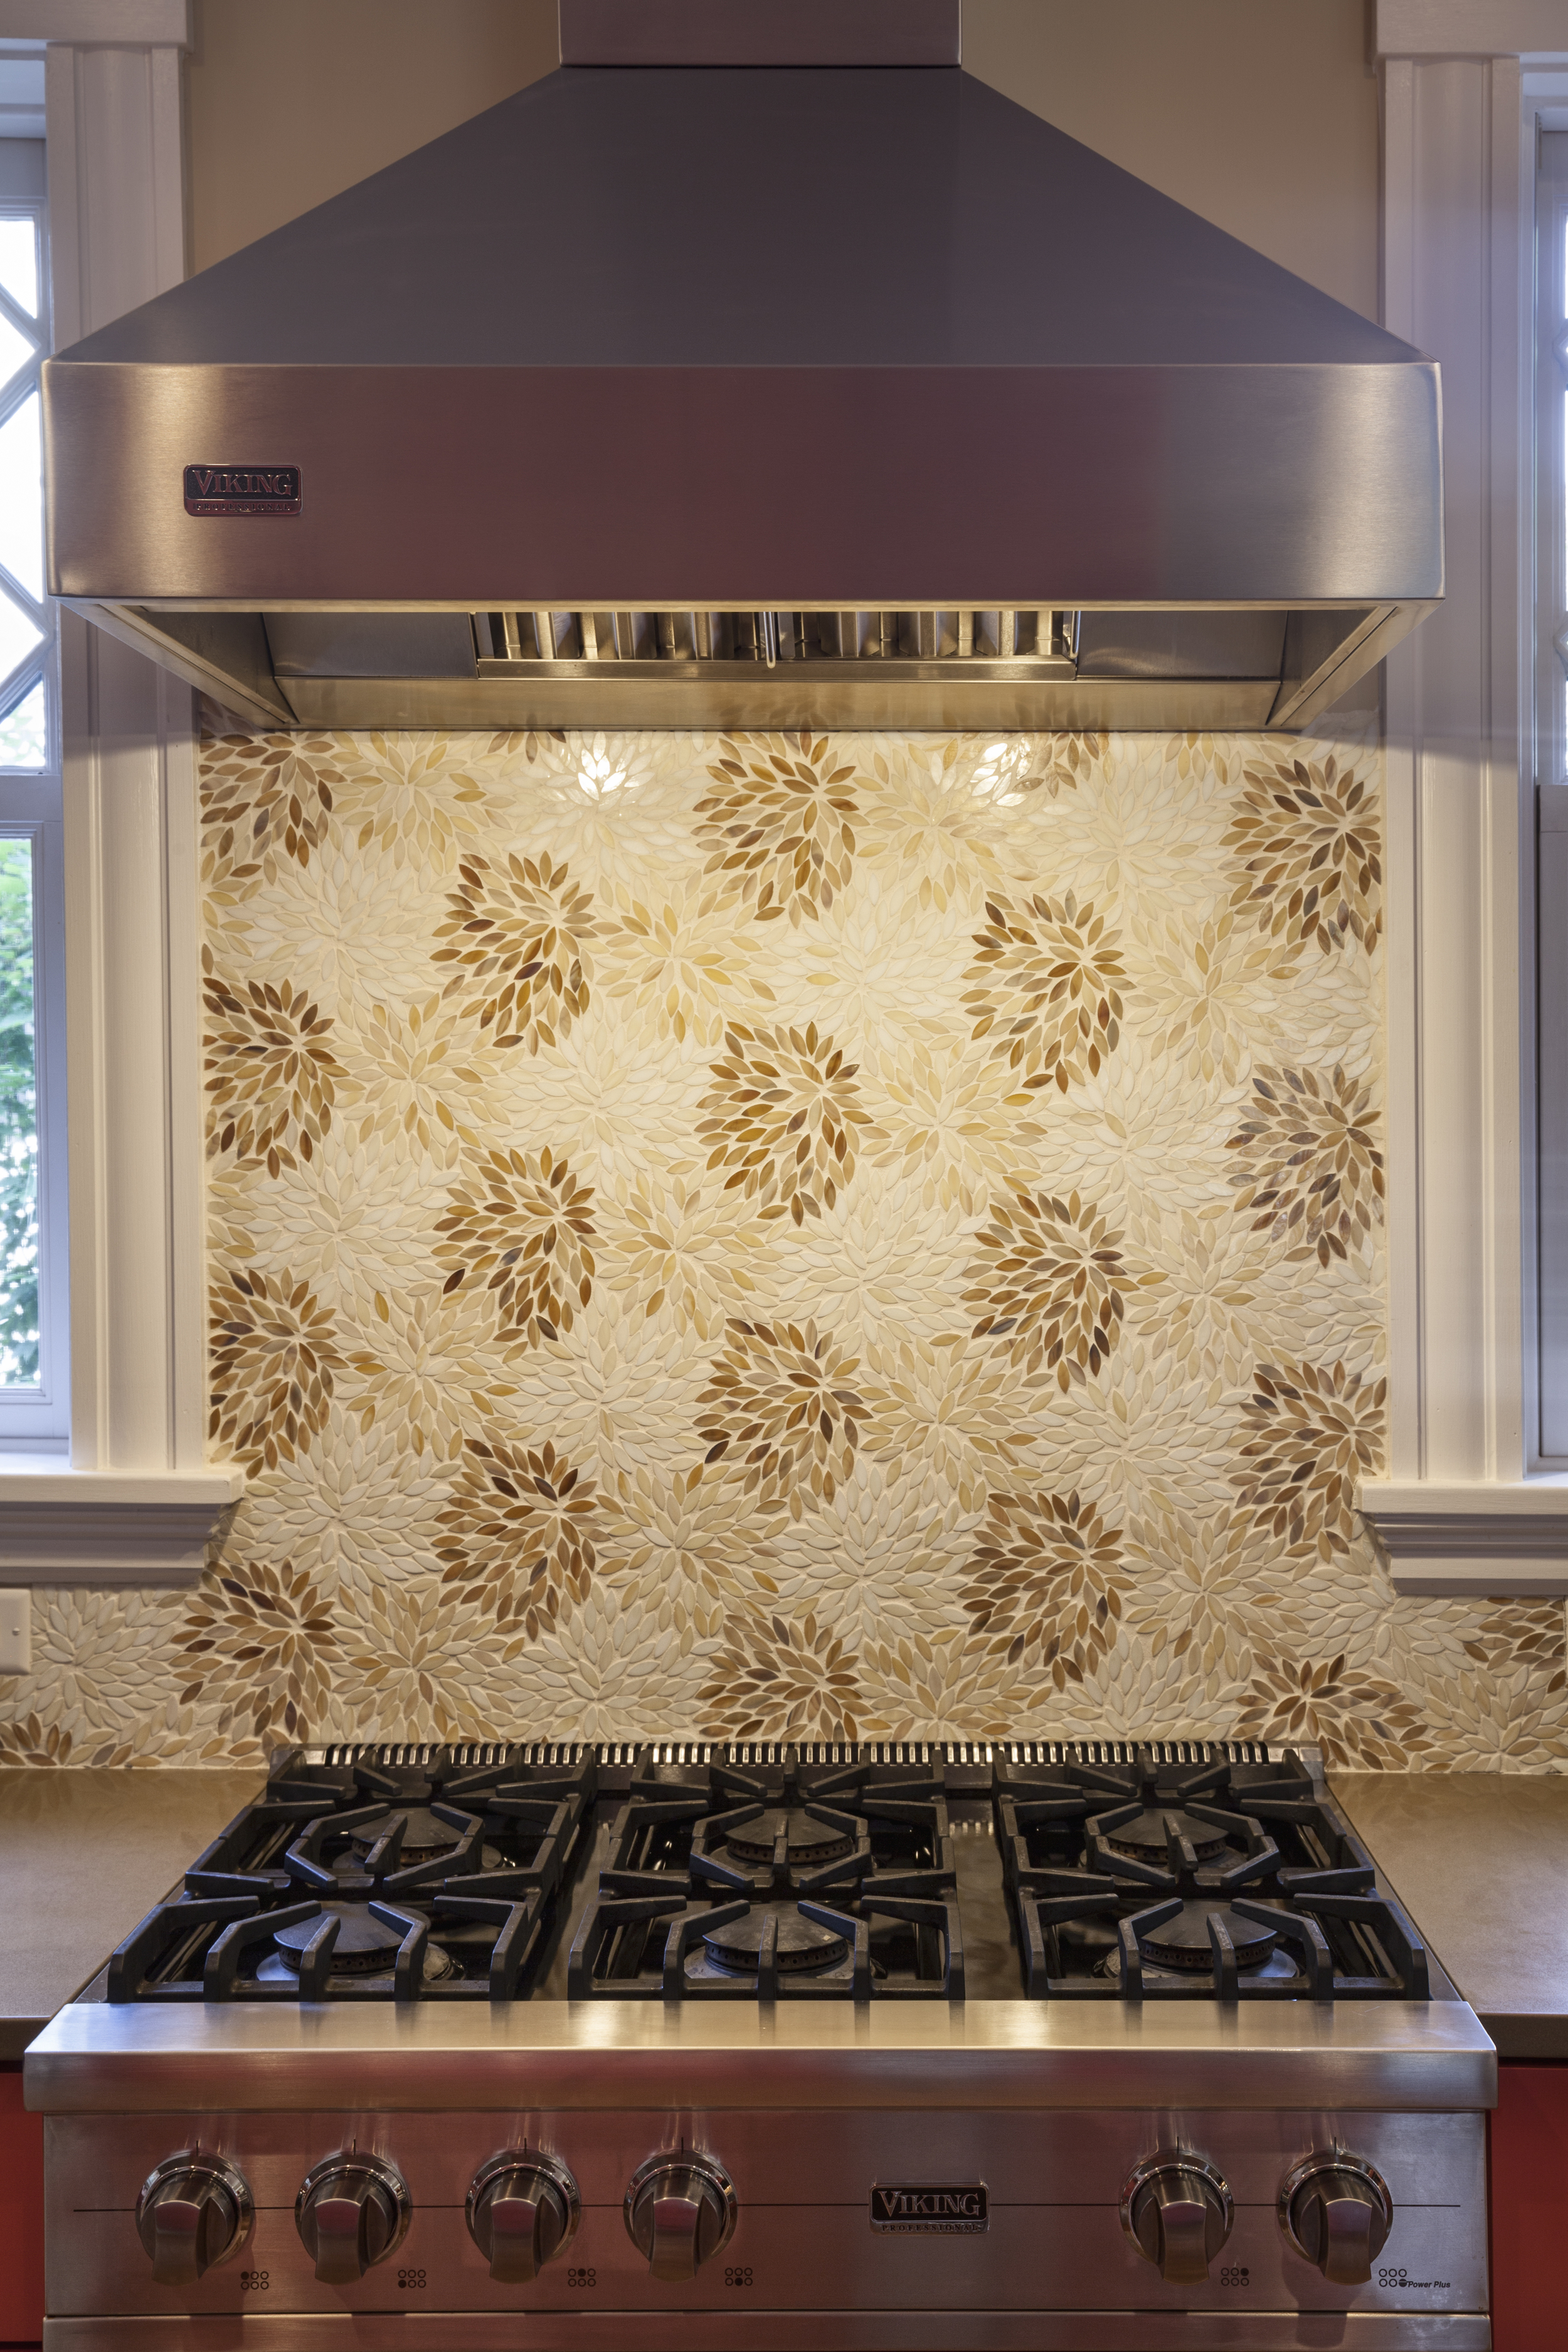 Why have a humdrum backsplash when you can have marble mosaic chrysanthemum petals? Fabulous indeed. Our tile setters rock!